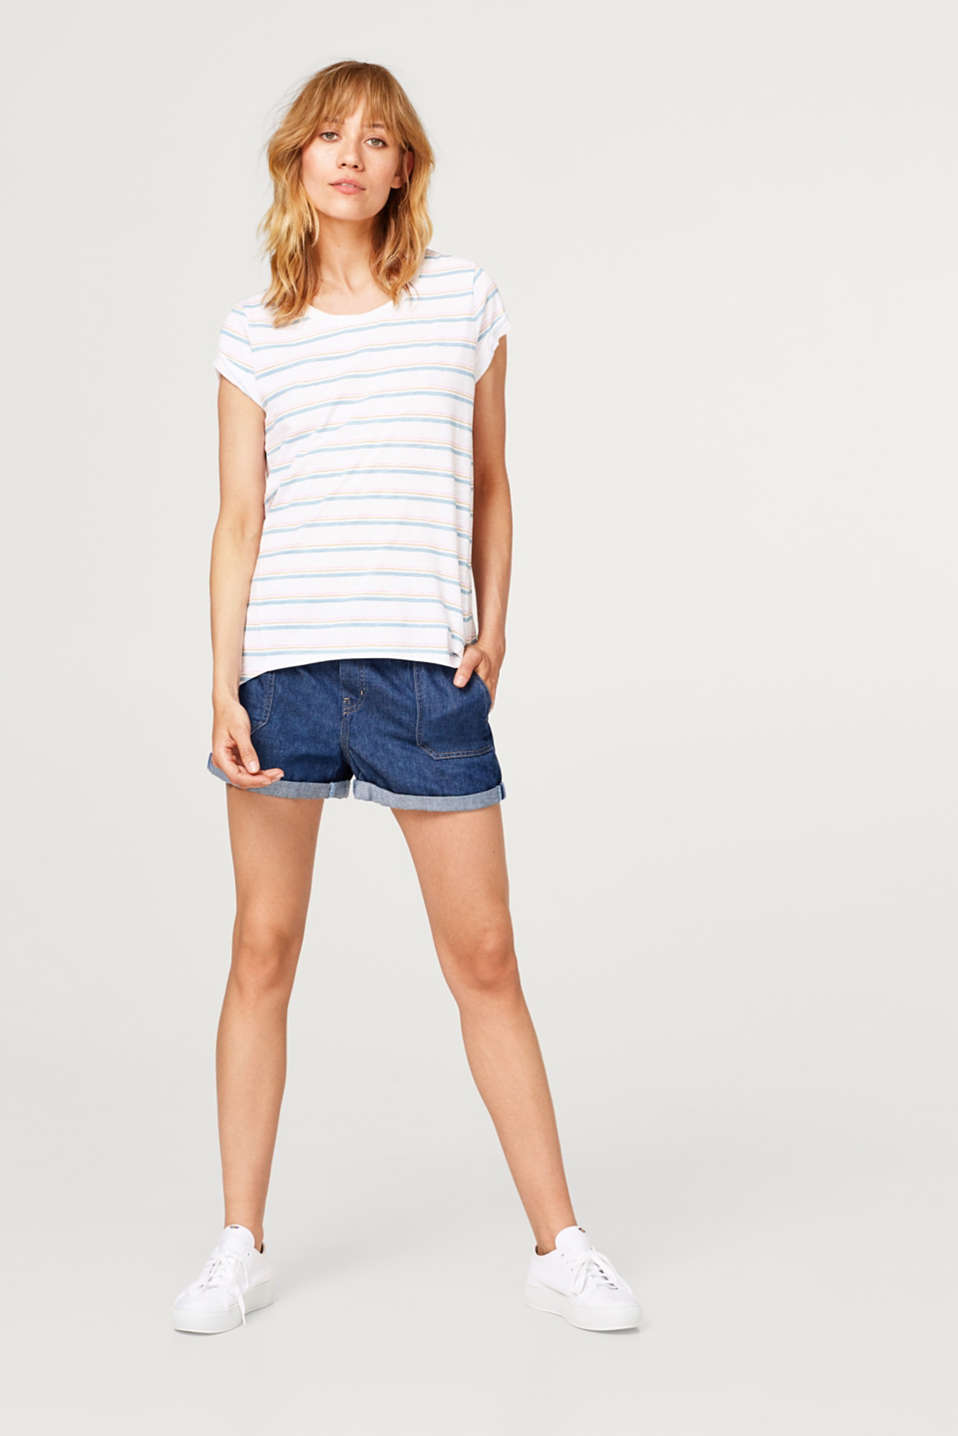 Slub T-shirt with a striped pattern, 100% cotton